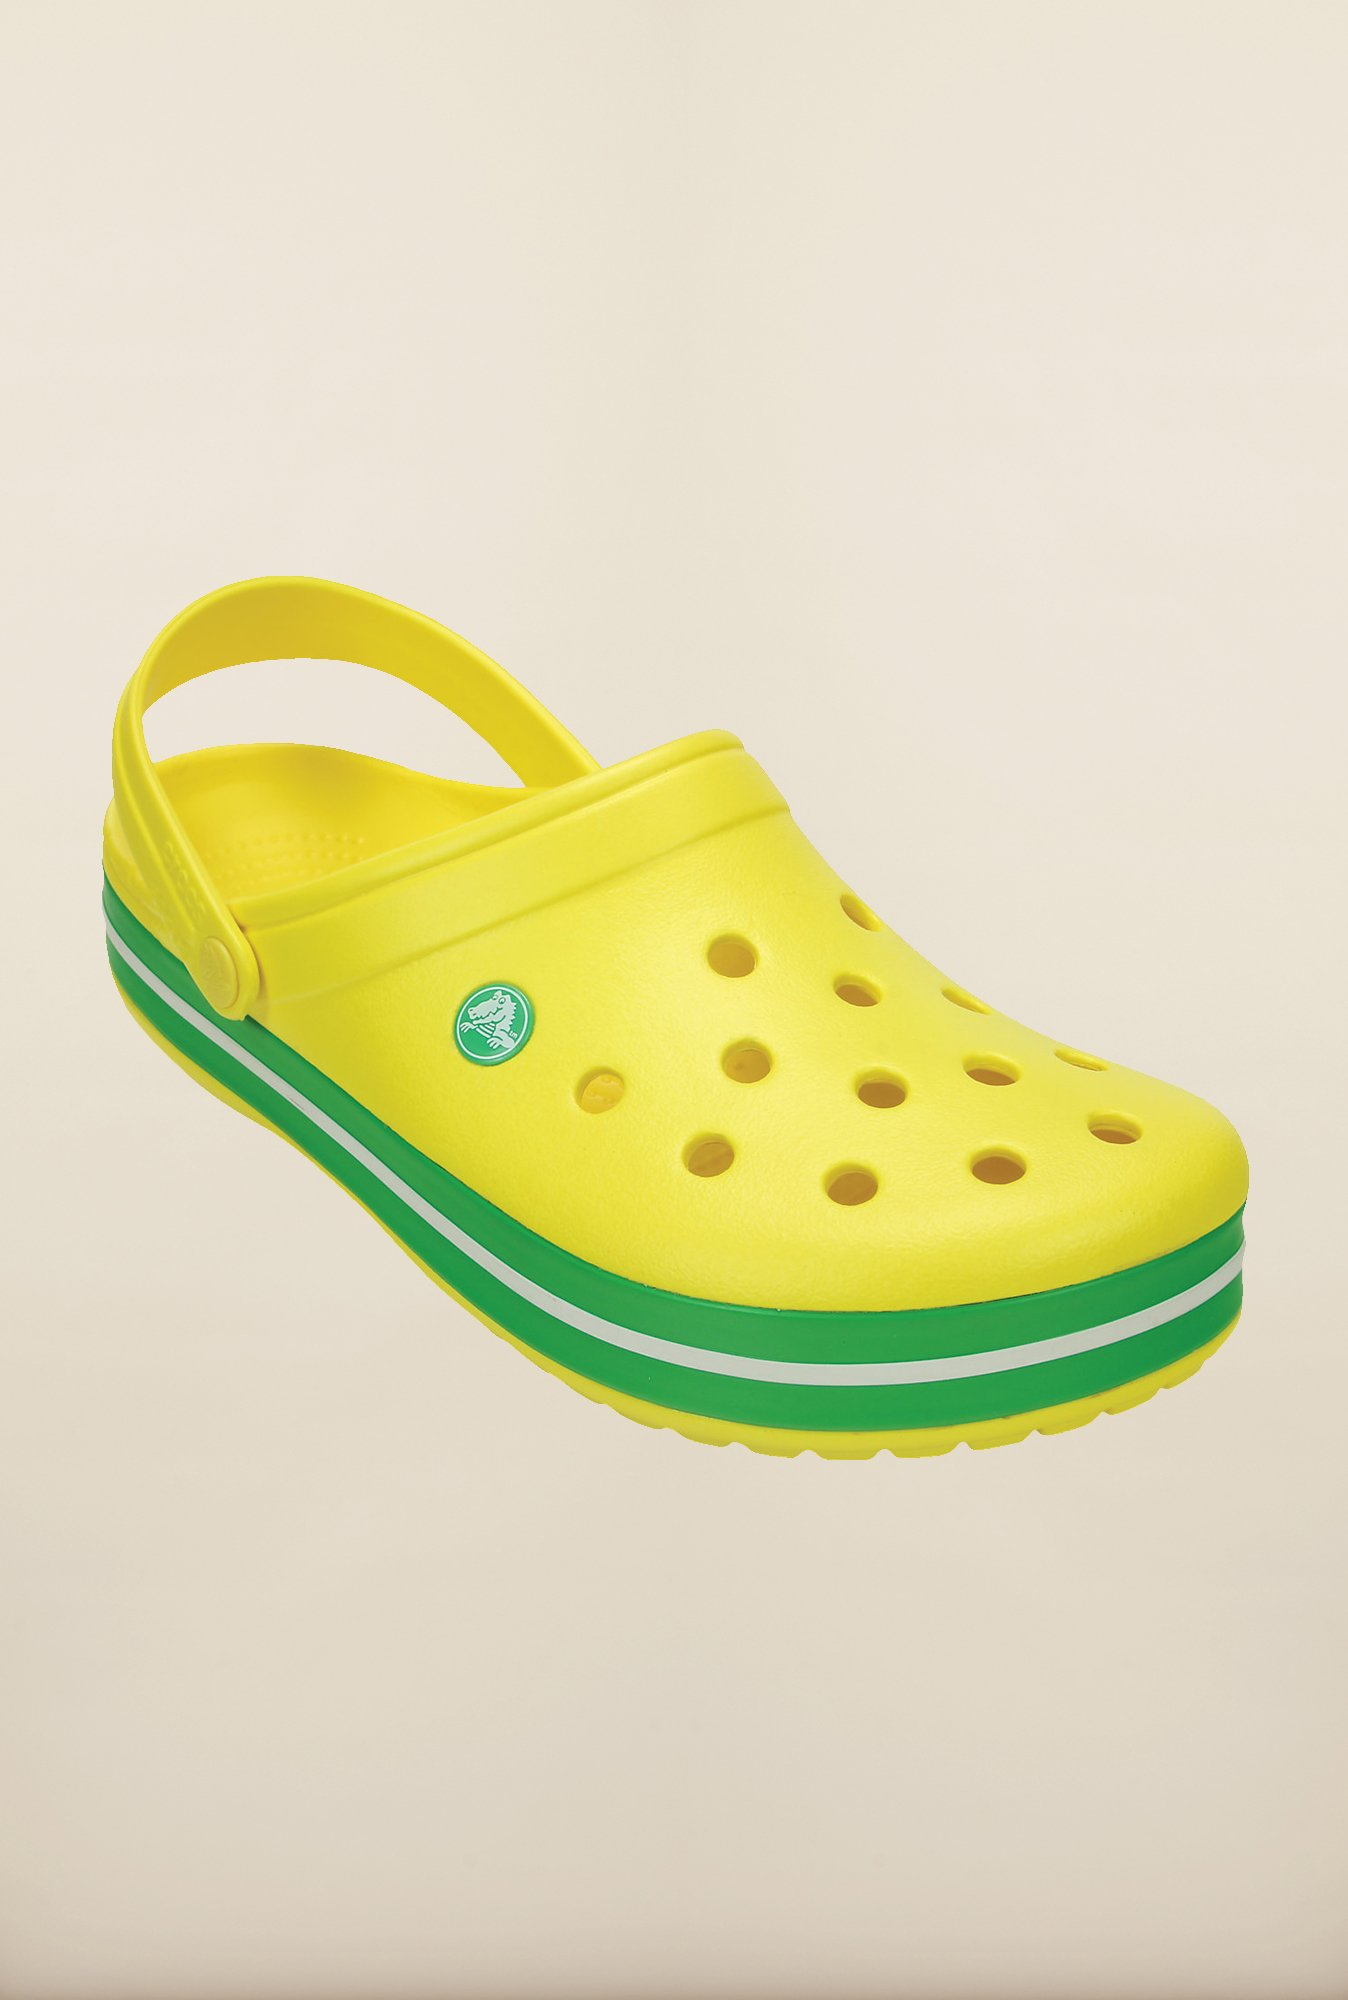 Crocs Crocband Lemon Yellow & Green Clogs